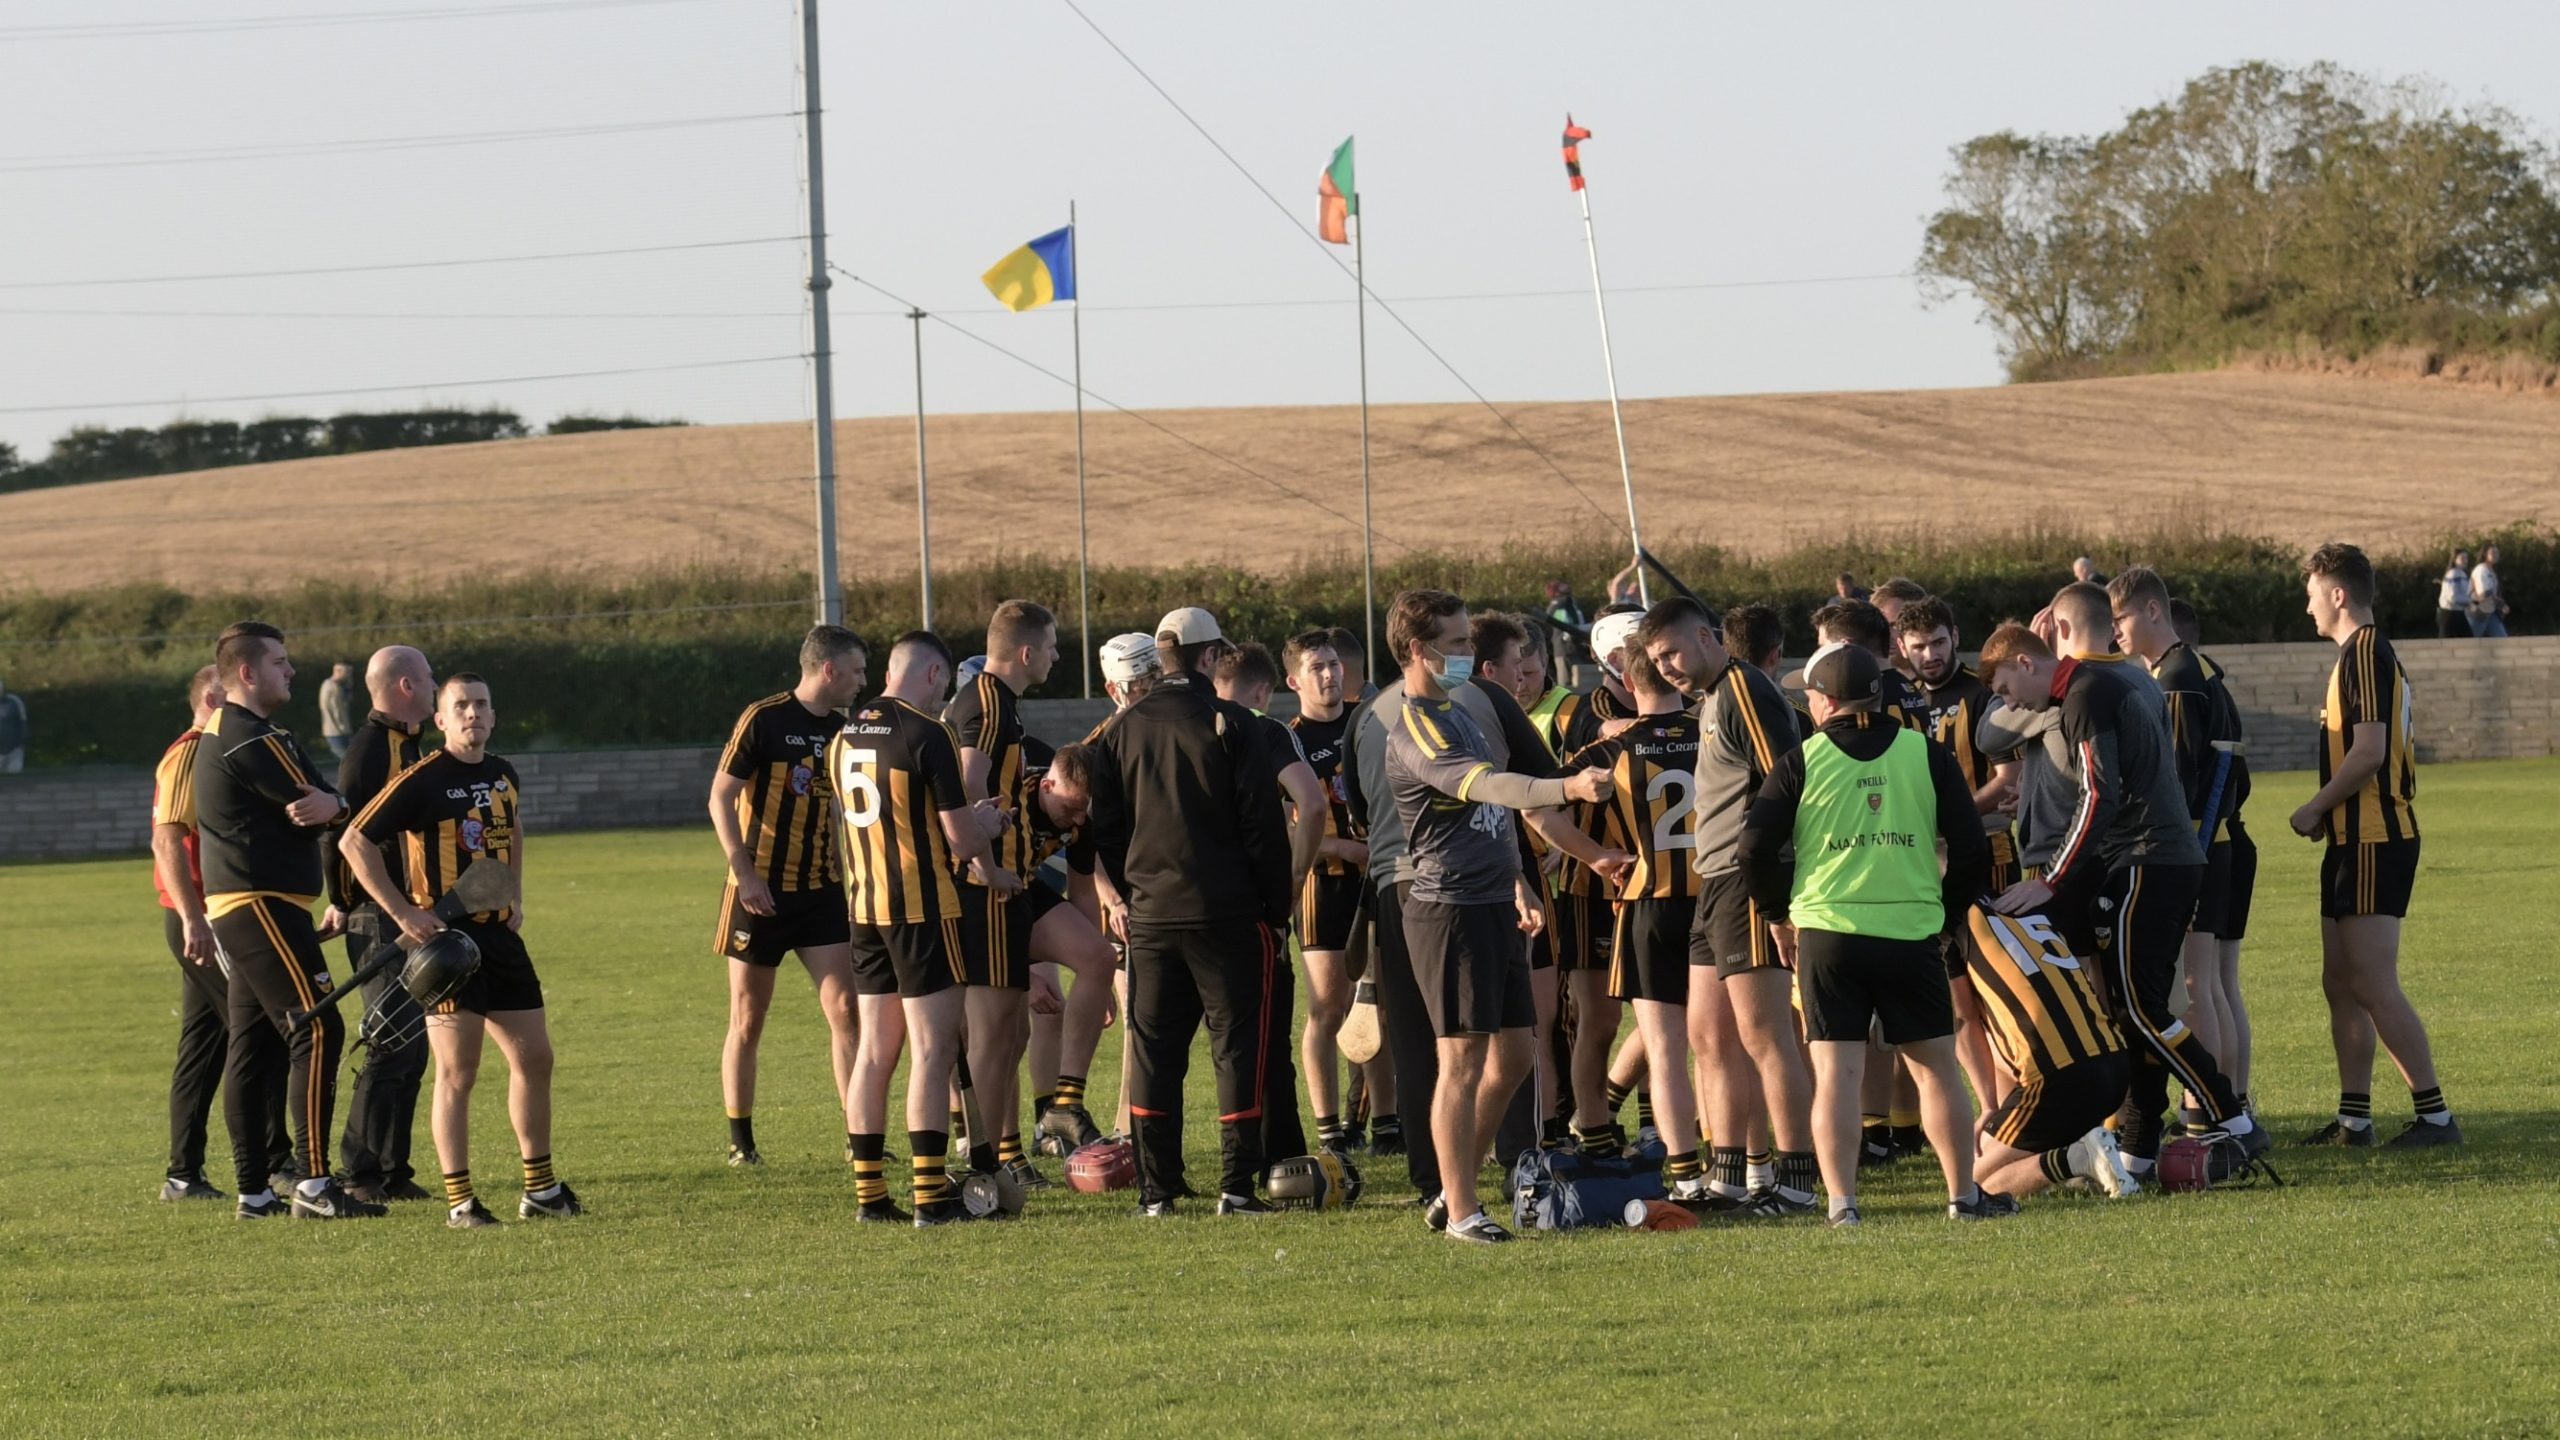 Down GAA SHC with Portaferry ends in a dramatic draw